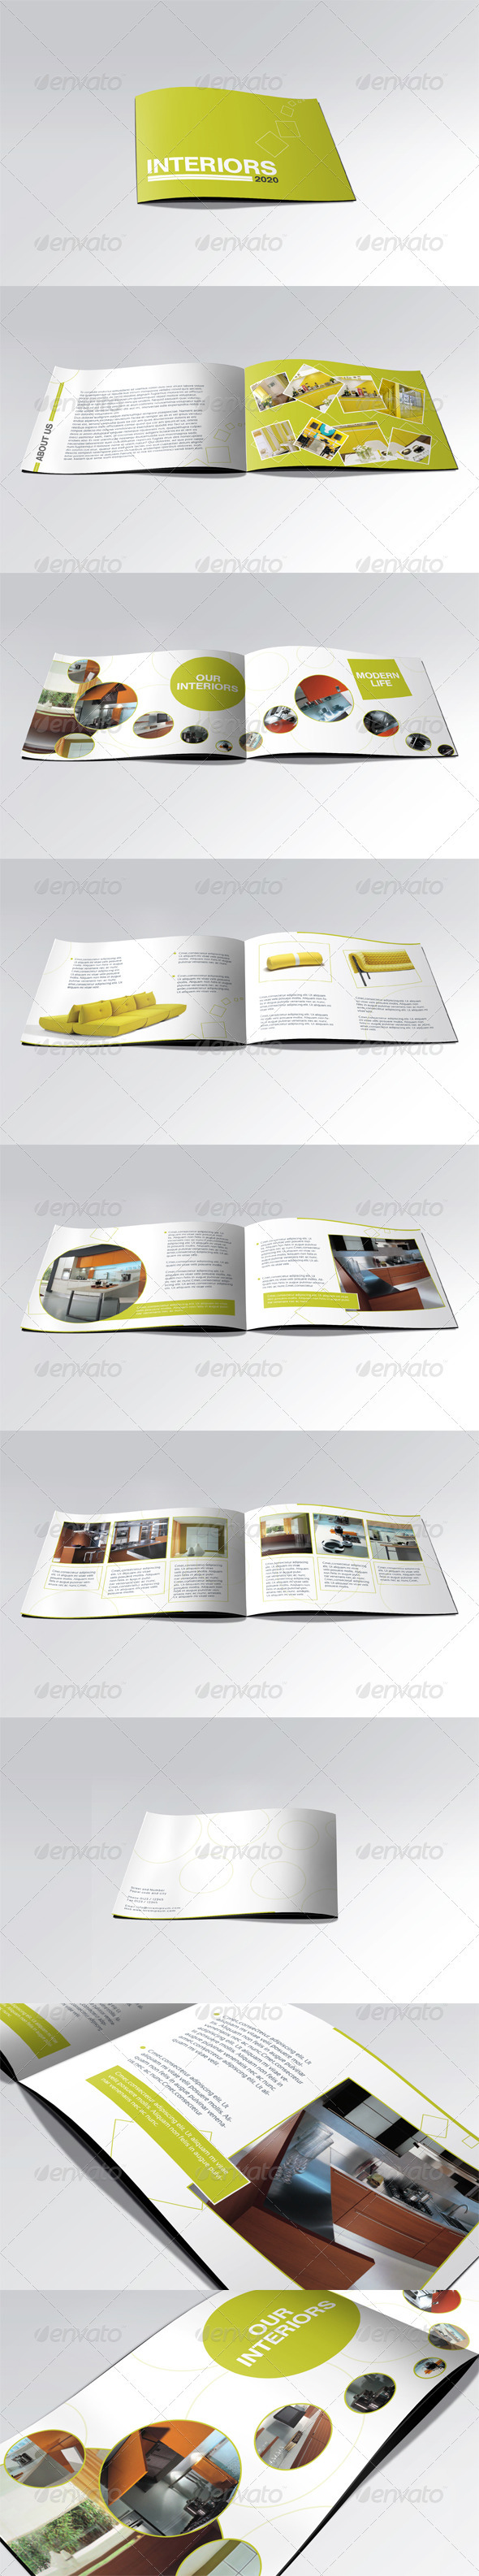 A5 Booklet - Catalogue by UnicoDesign